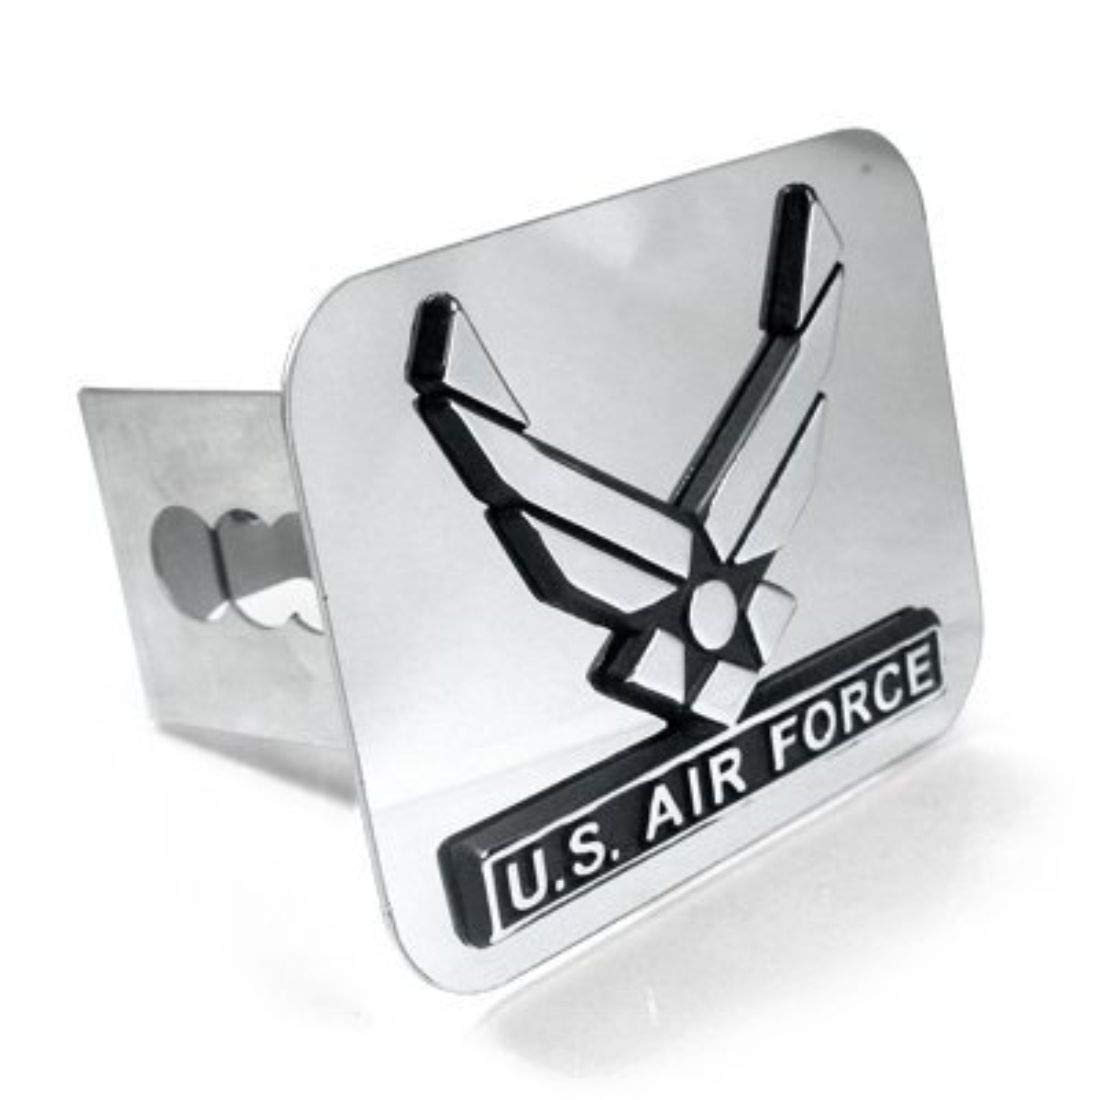 DanteGTS US Air Force Wing Chrome Trailer 2 Hitch Plug Cover Cap Stainless Steel